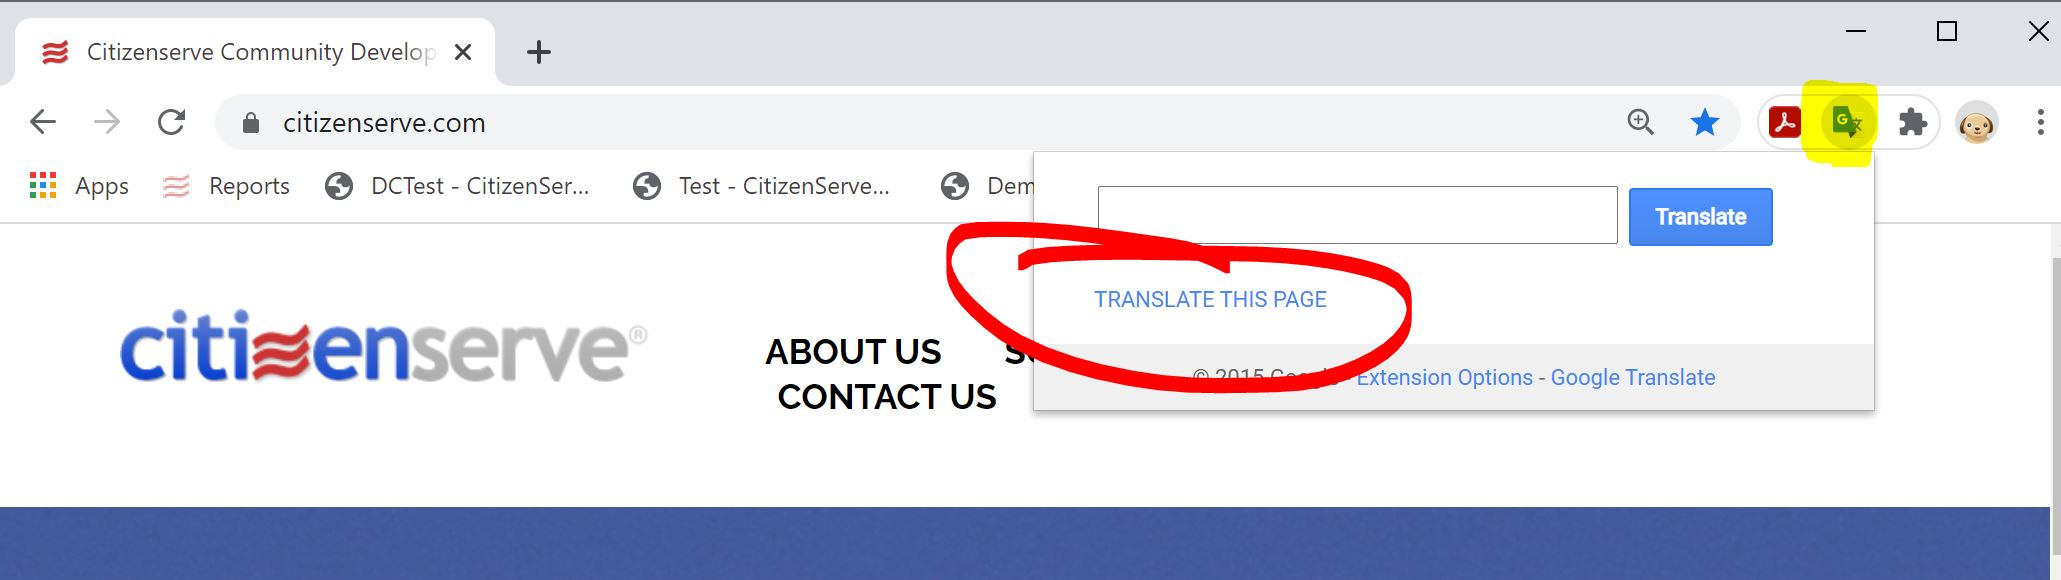 Translate This Page Google Extension Button